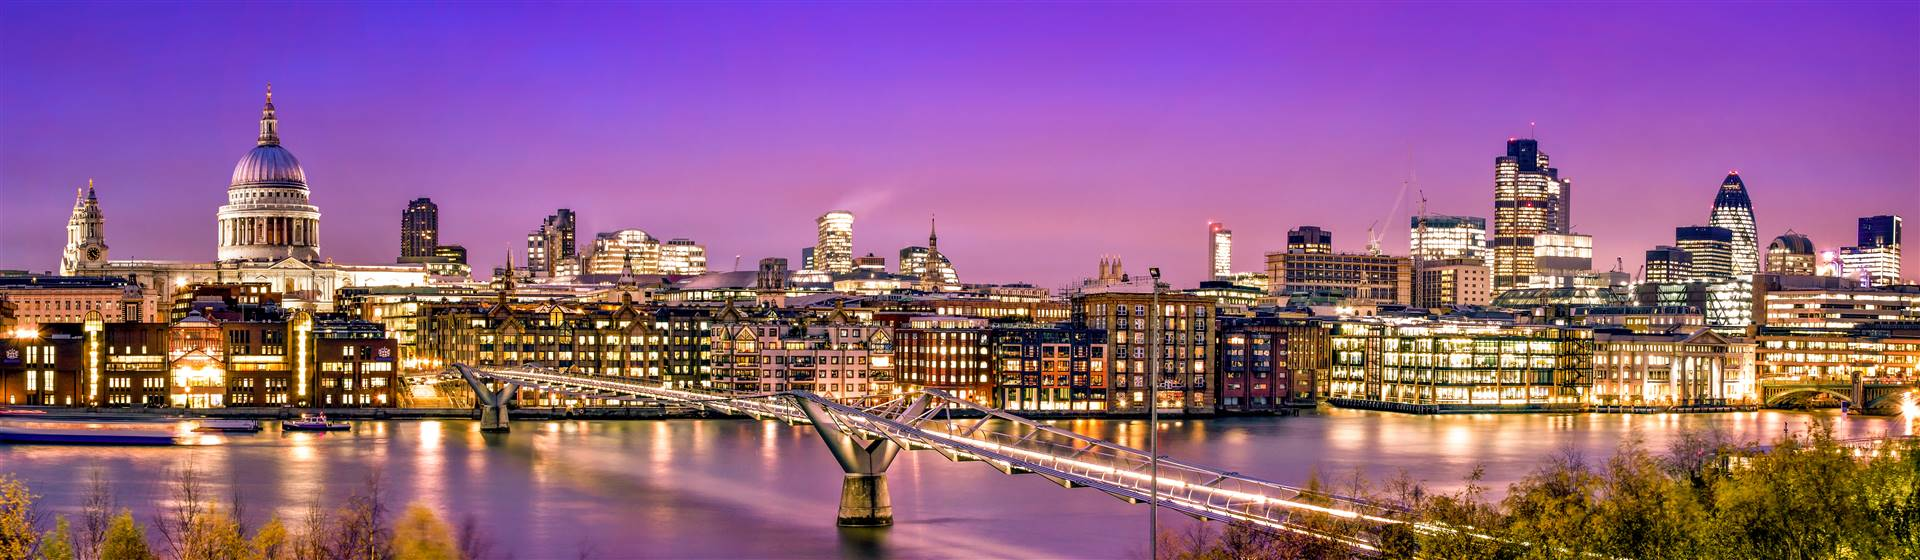 London Panorama of St. Paul's Cathedral, Millennium Bridge and the Financial District